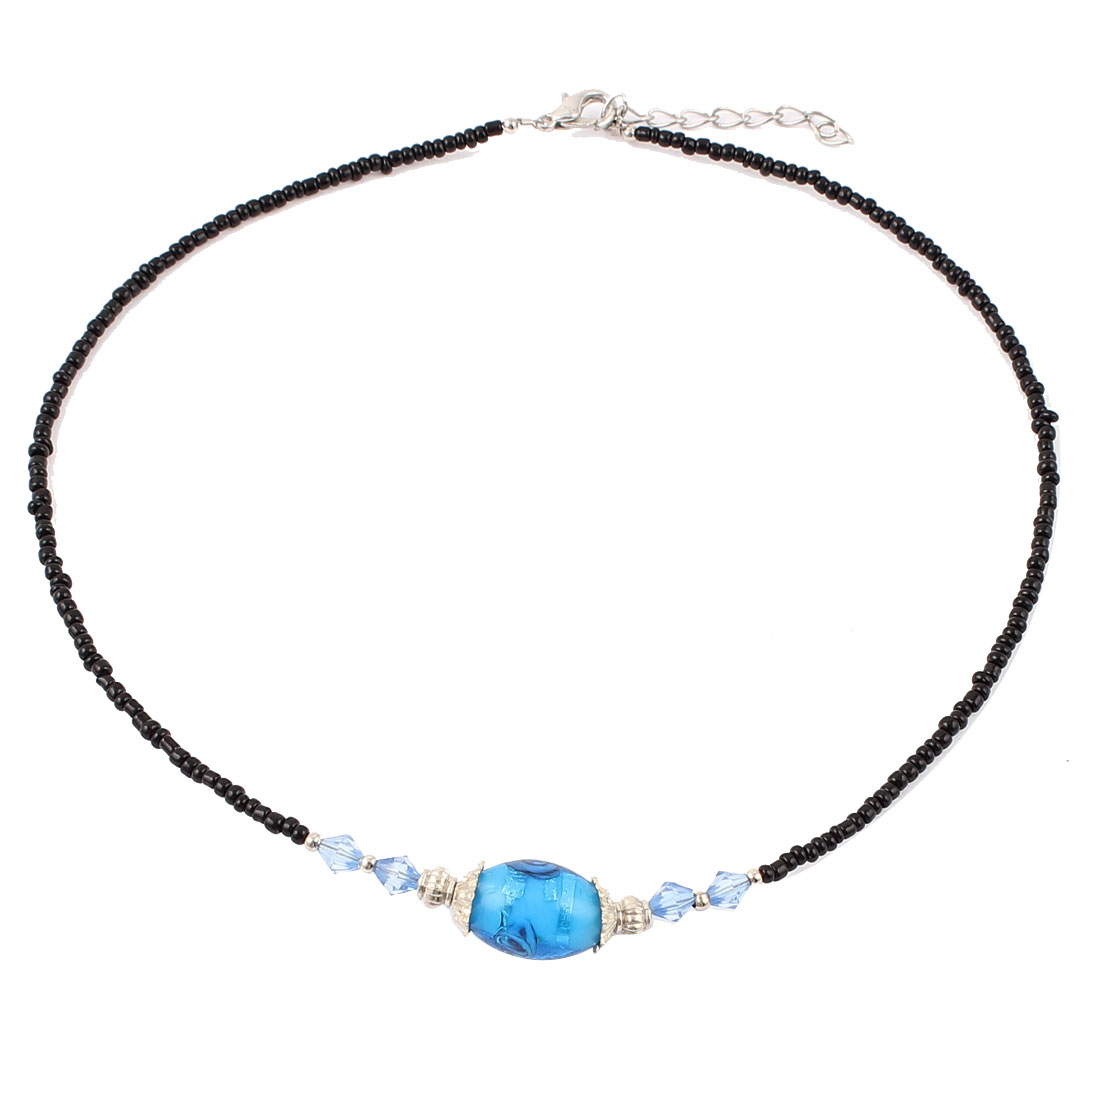 Lady Woman Lobster Clasp Link Oval Chamilia Bead Ball Chain Necklace Teal Blue